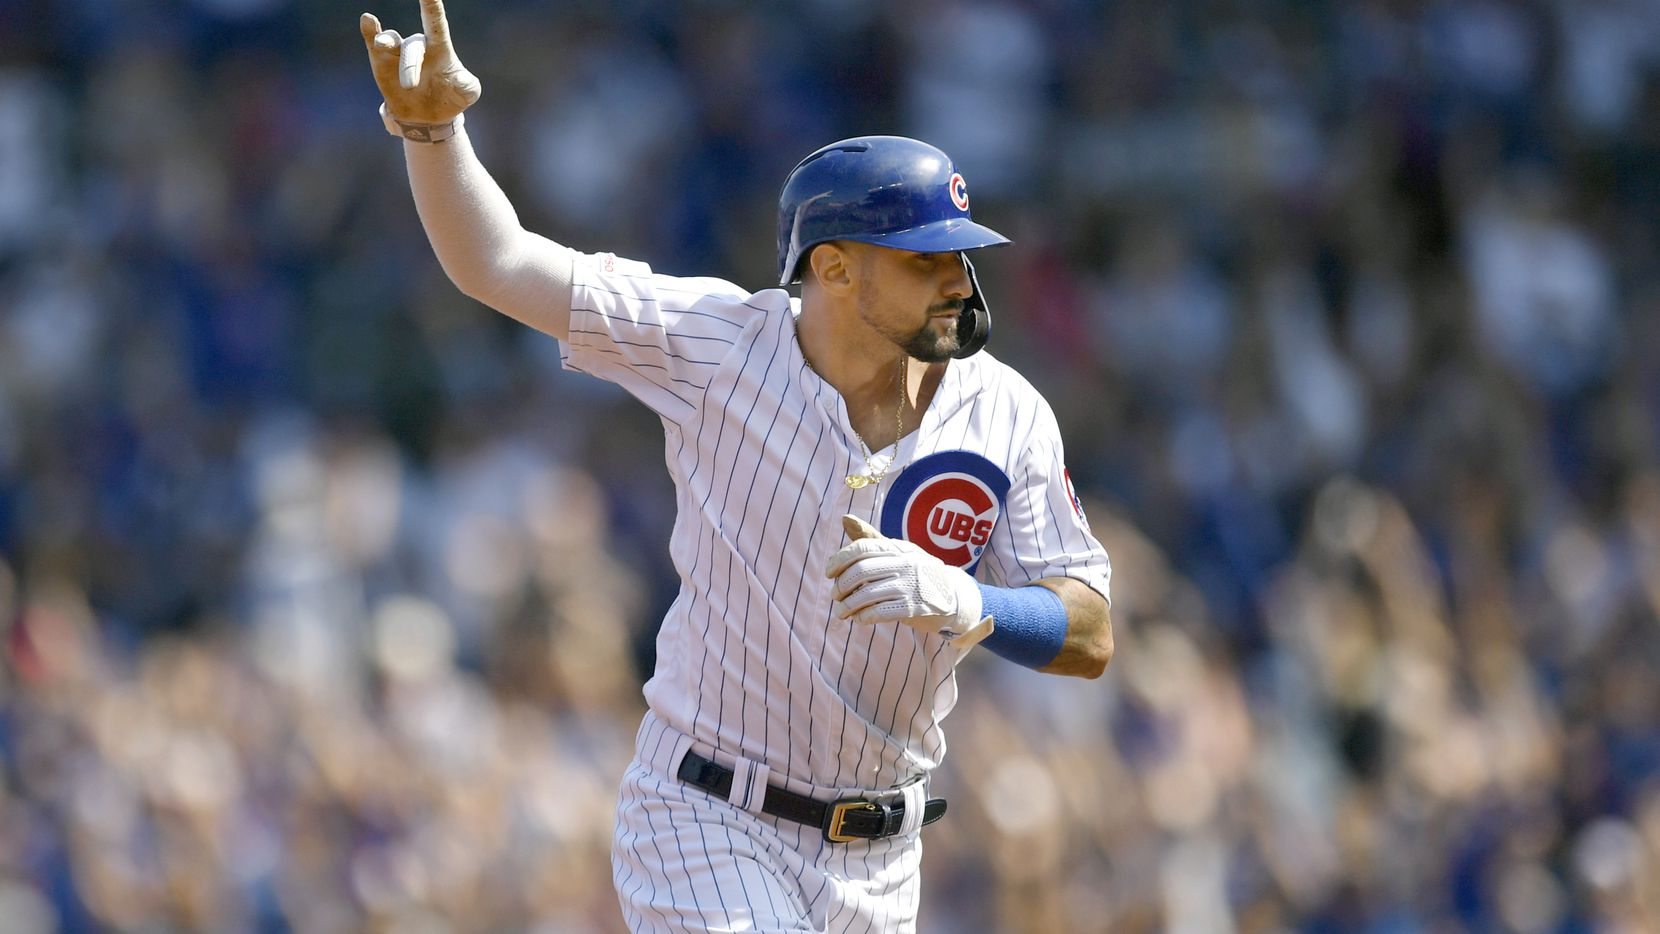 FILE - Chicago Cubs' Nicholas Castellanos celebrates while rounding the bases after Kris Bryant hit a three-run home run during the first inning of a baseball game against the Pittsburgh Pirates Sunday, Sept. 15, 2019, in Chicago. (AP Photo/Paul Beaty)